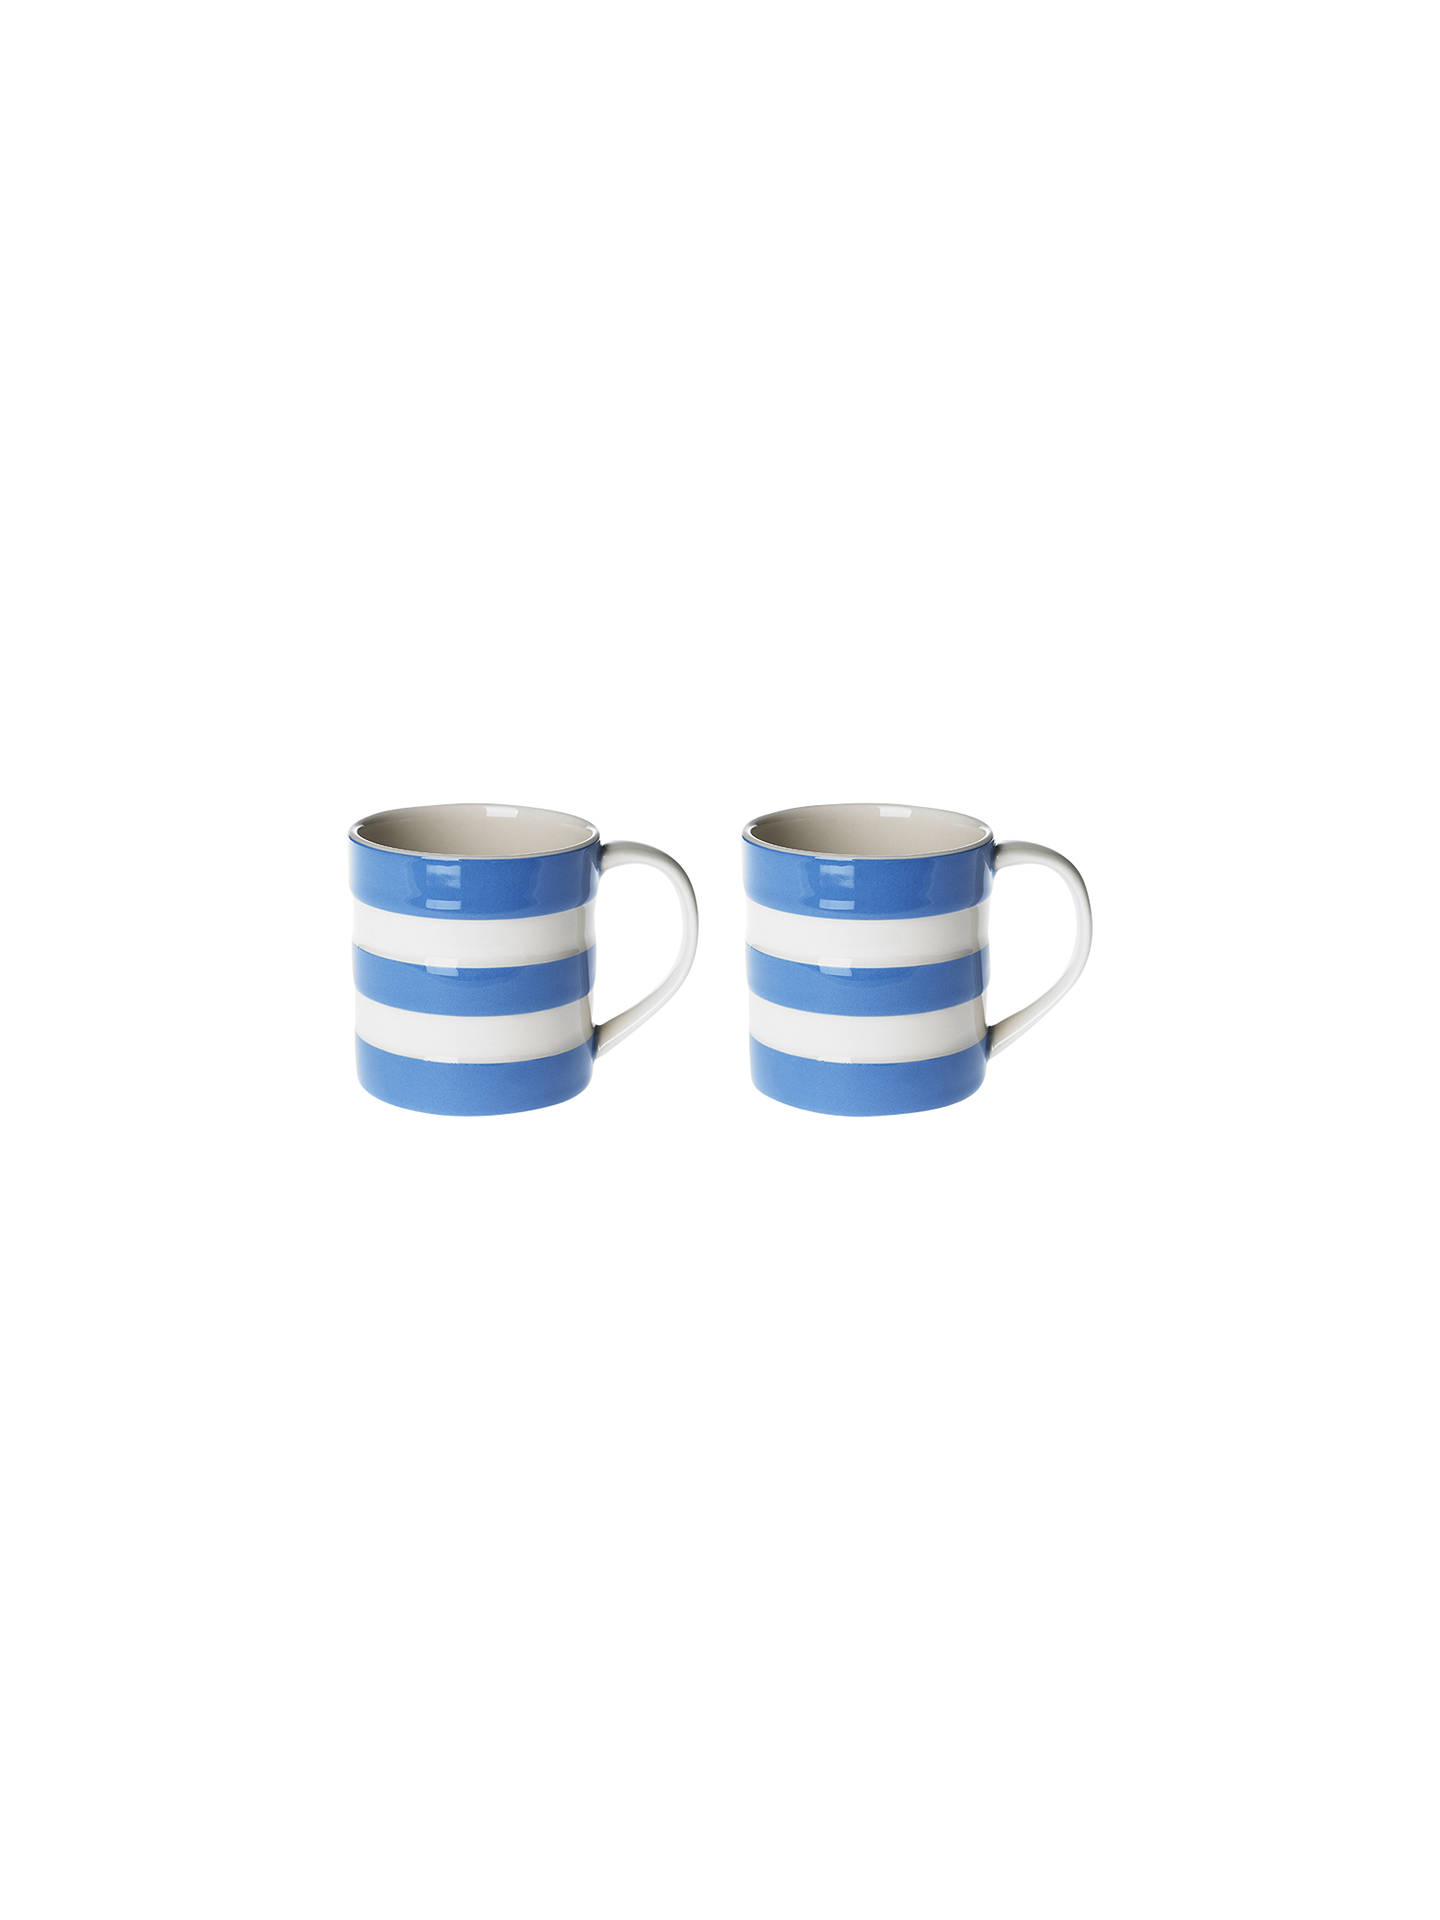 Buy Cornishware Mugs, Set of 2, Blue/White Online at johnlewis.com